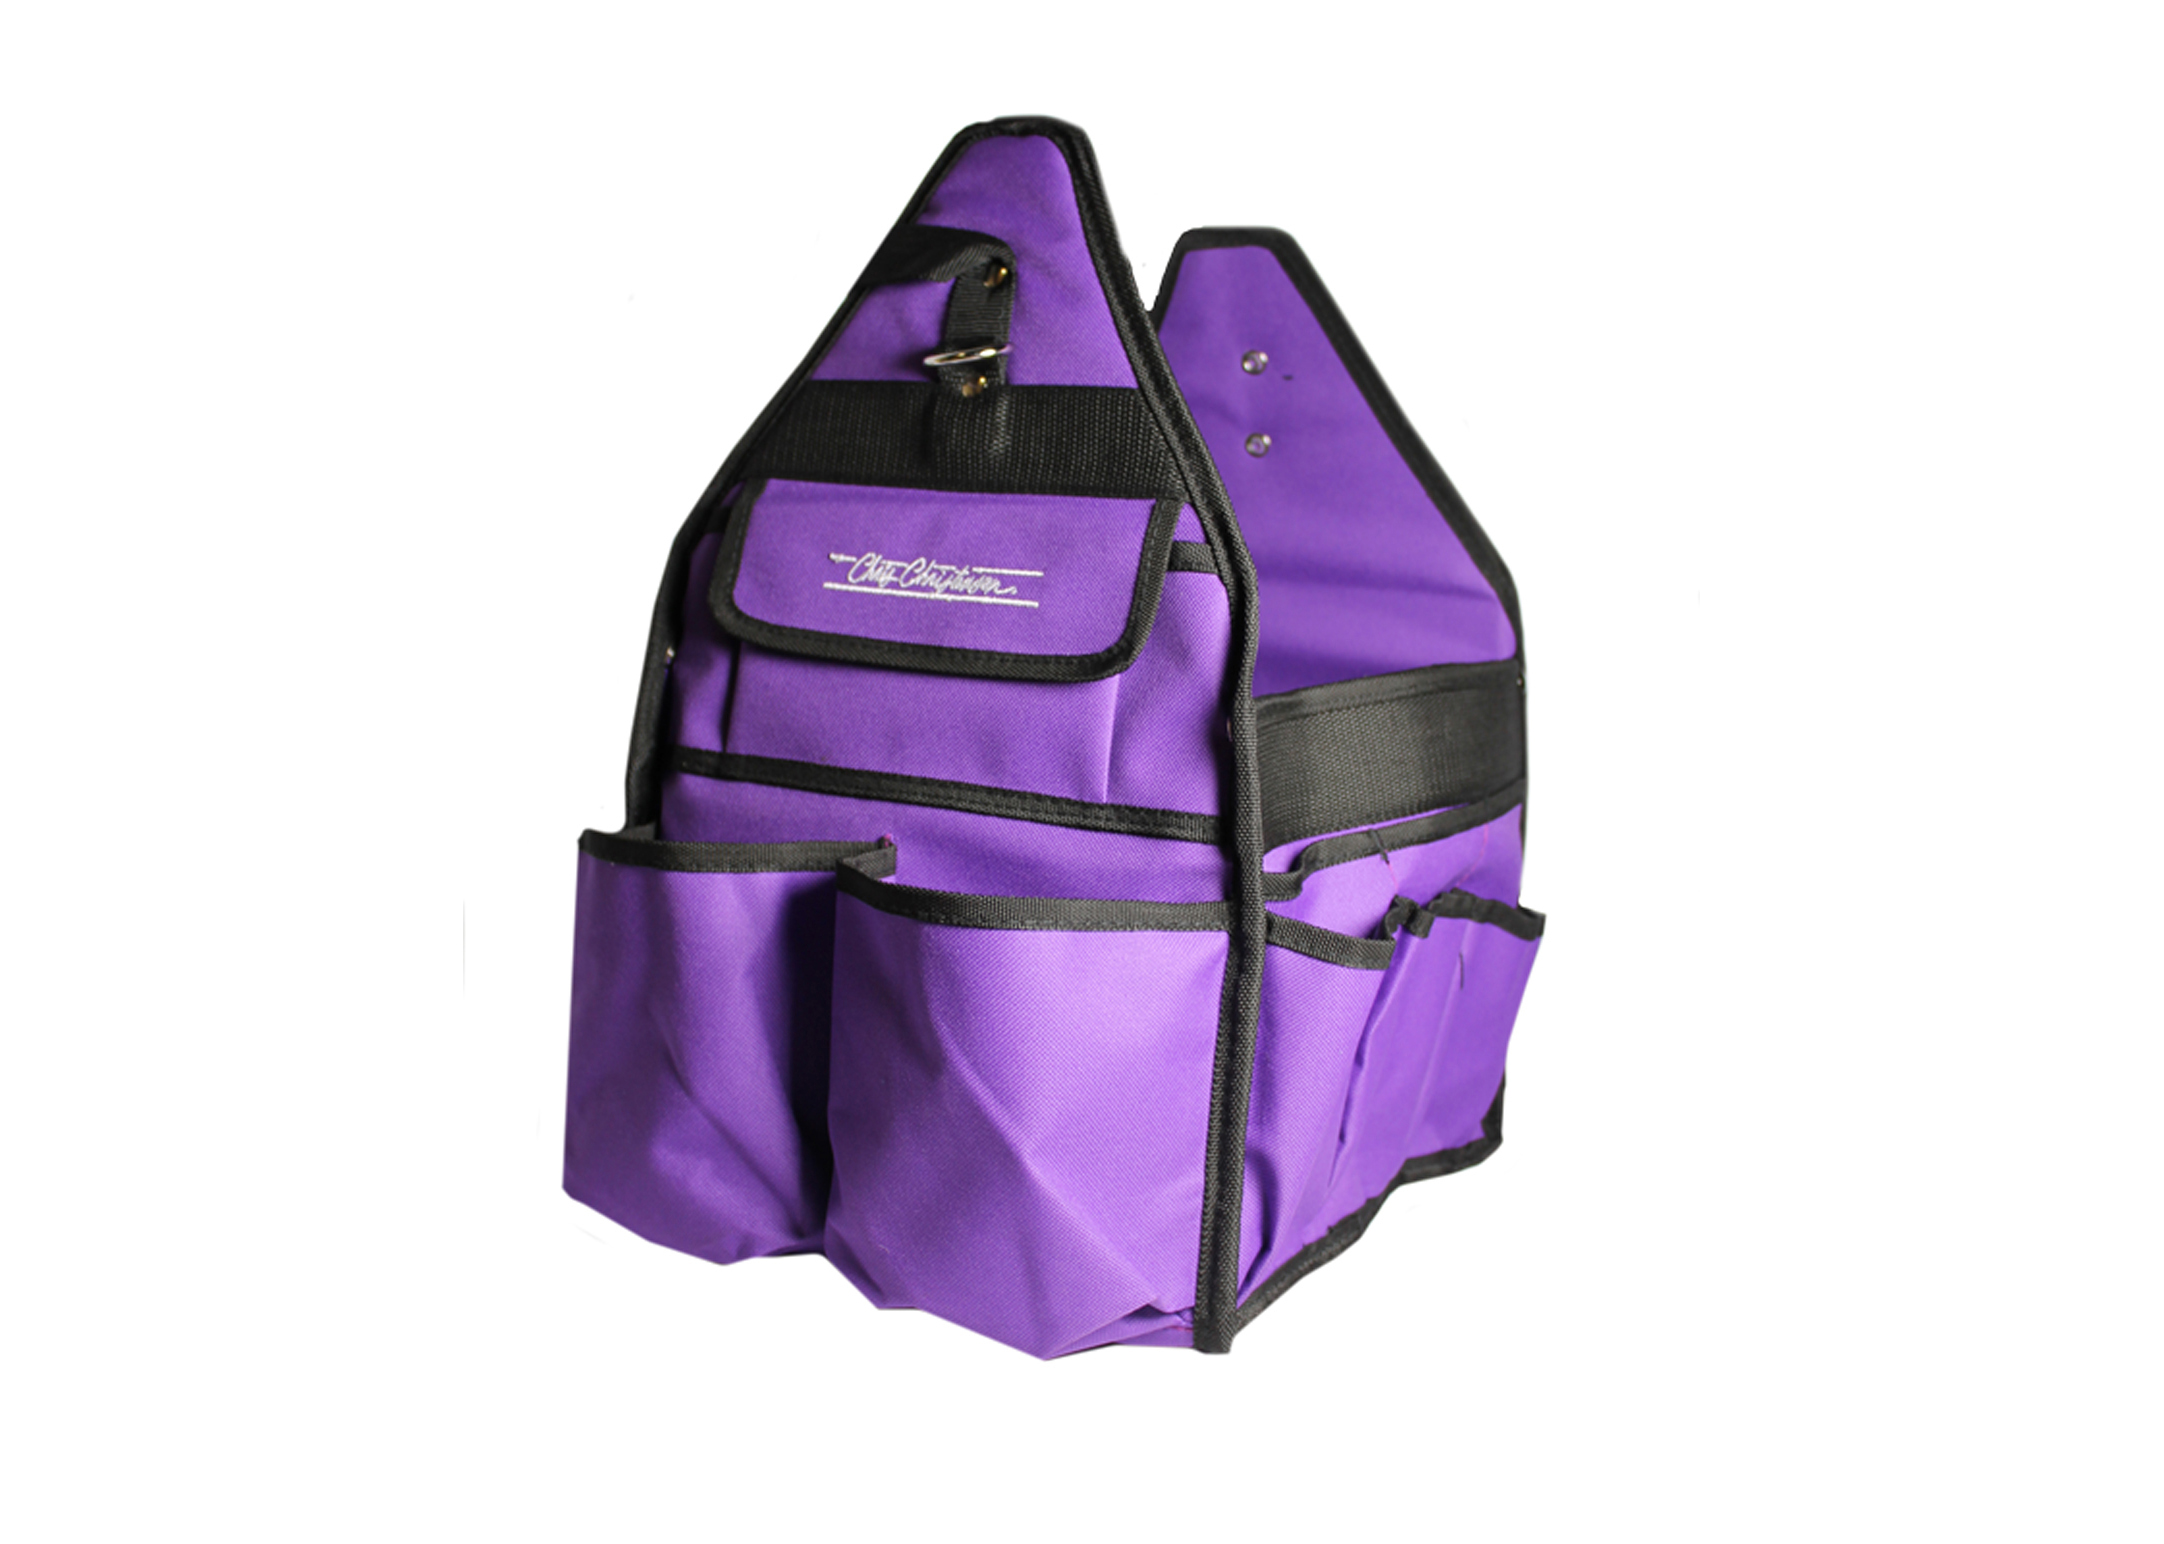 Chris Christensen Systems Small Grooming Tote Purple Travel Case